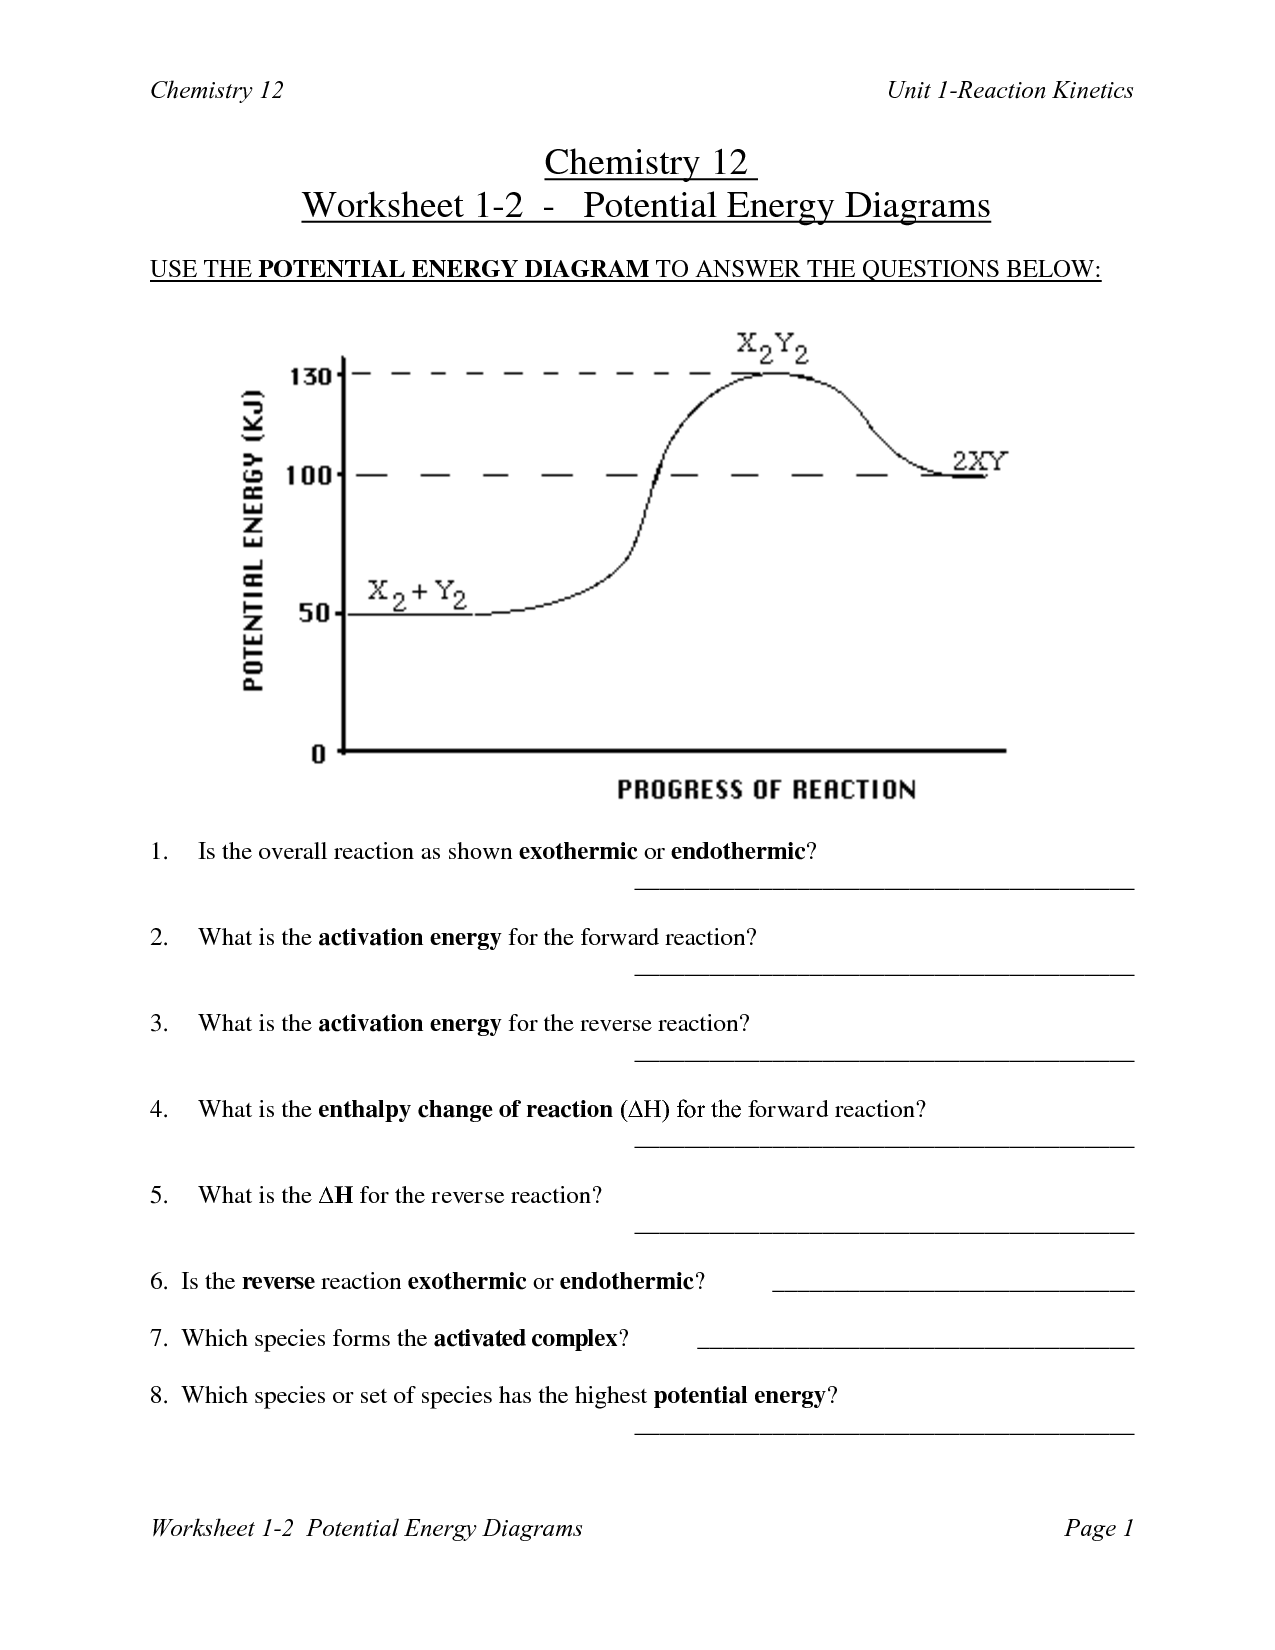 potential energy diagram worksheet key long bone blank 10 best images of kinetic with answers